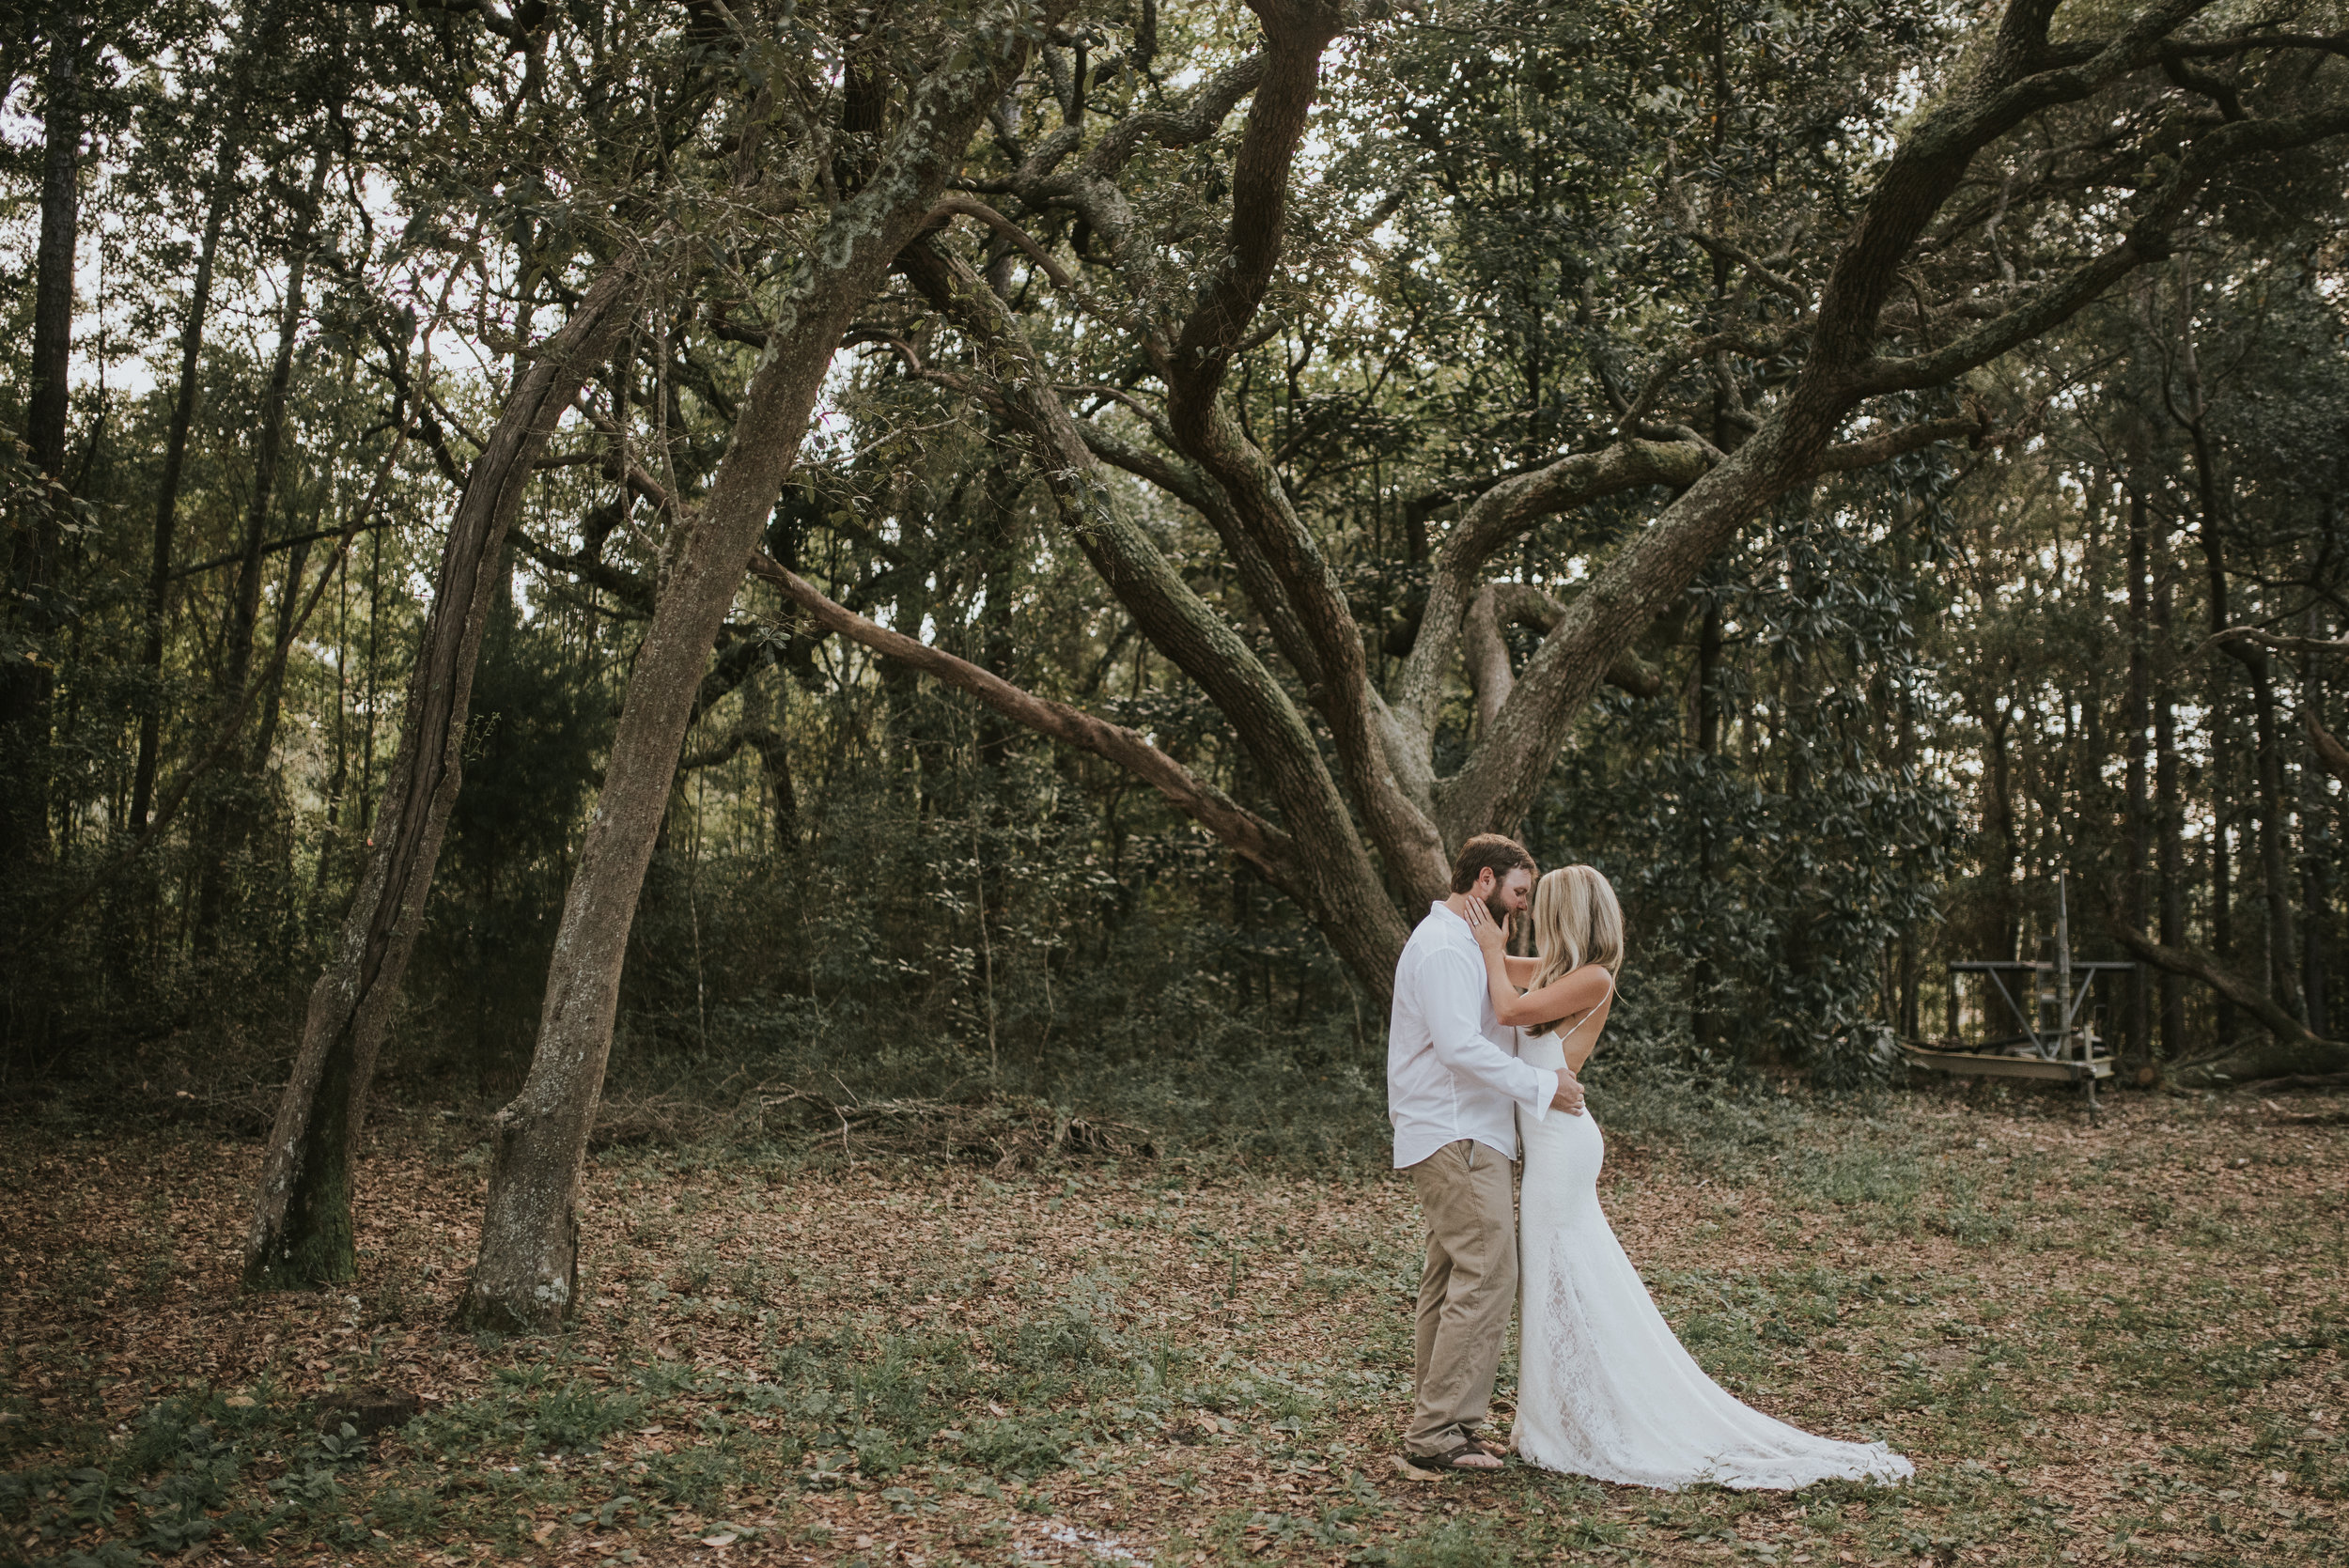 Click to view the whole bayou wedding!